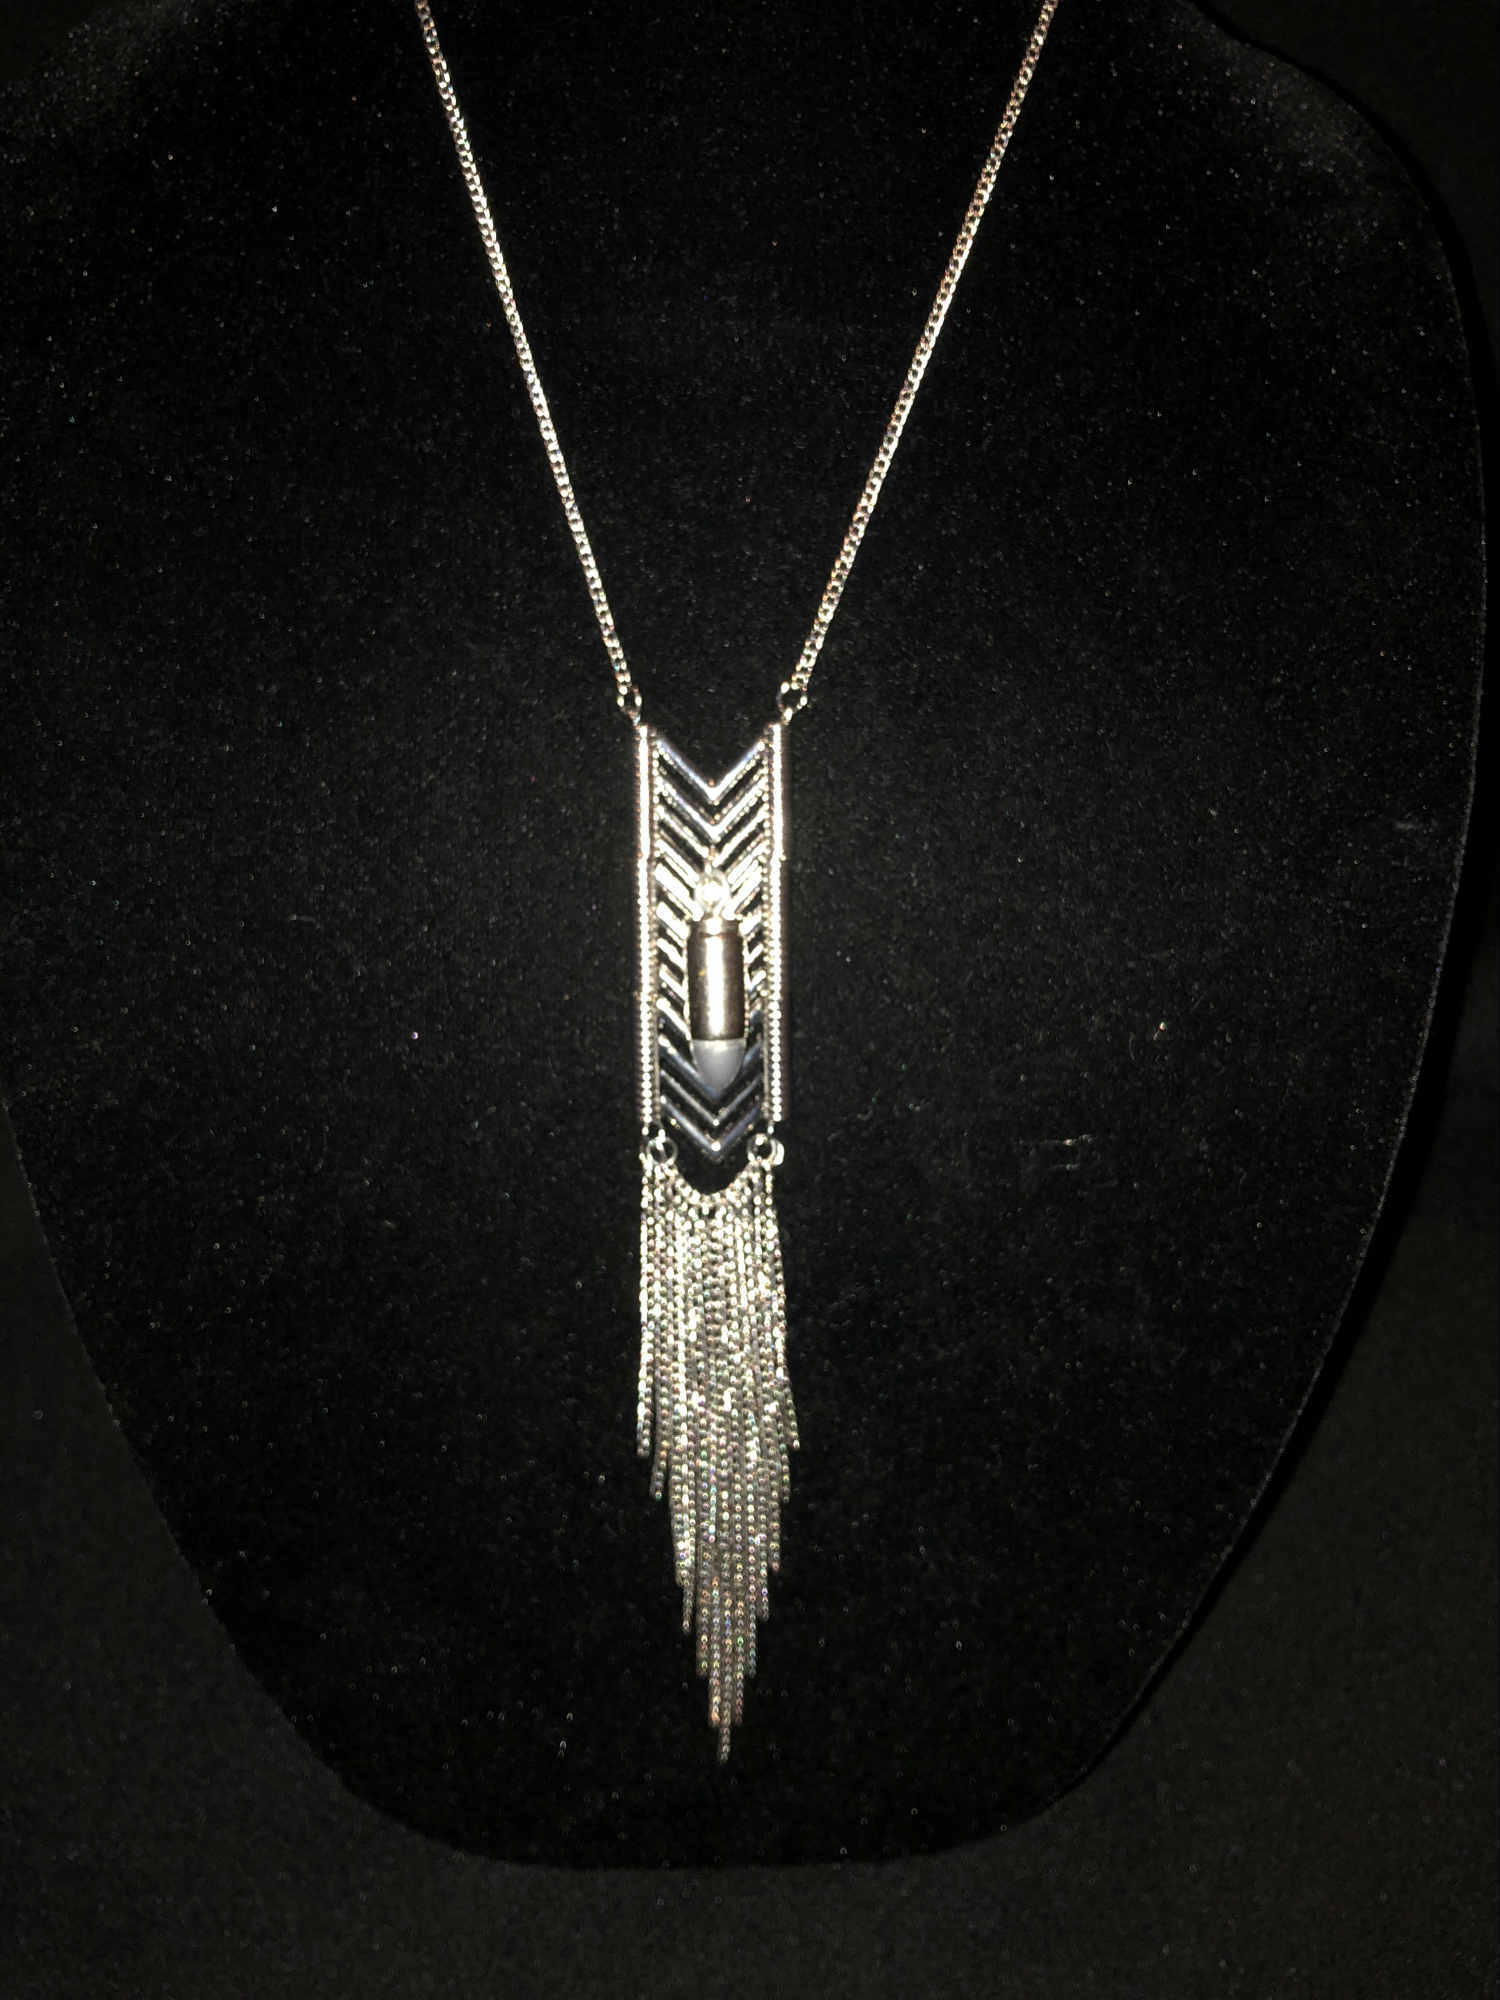 Silver Feather 36 inch adjustable chain and stainless metalwork with .9mm bullet